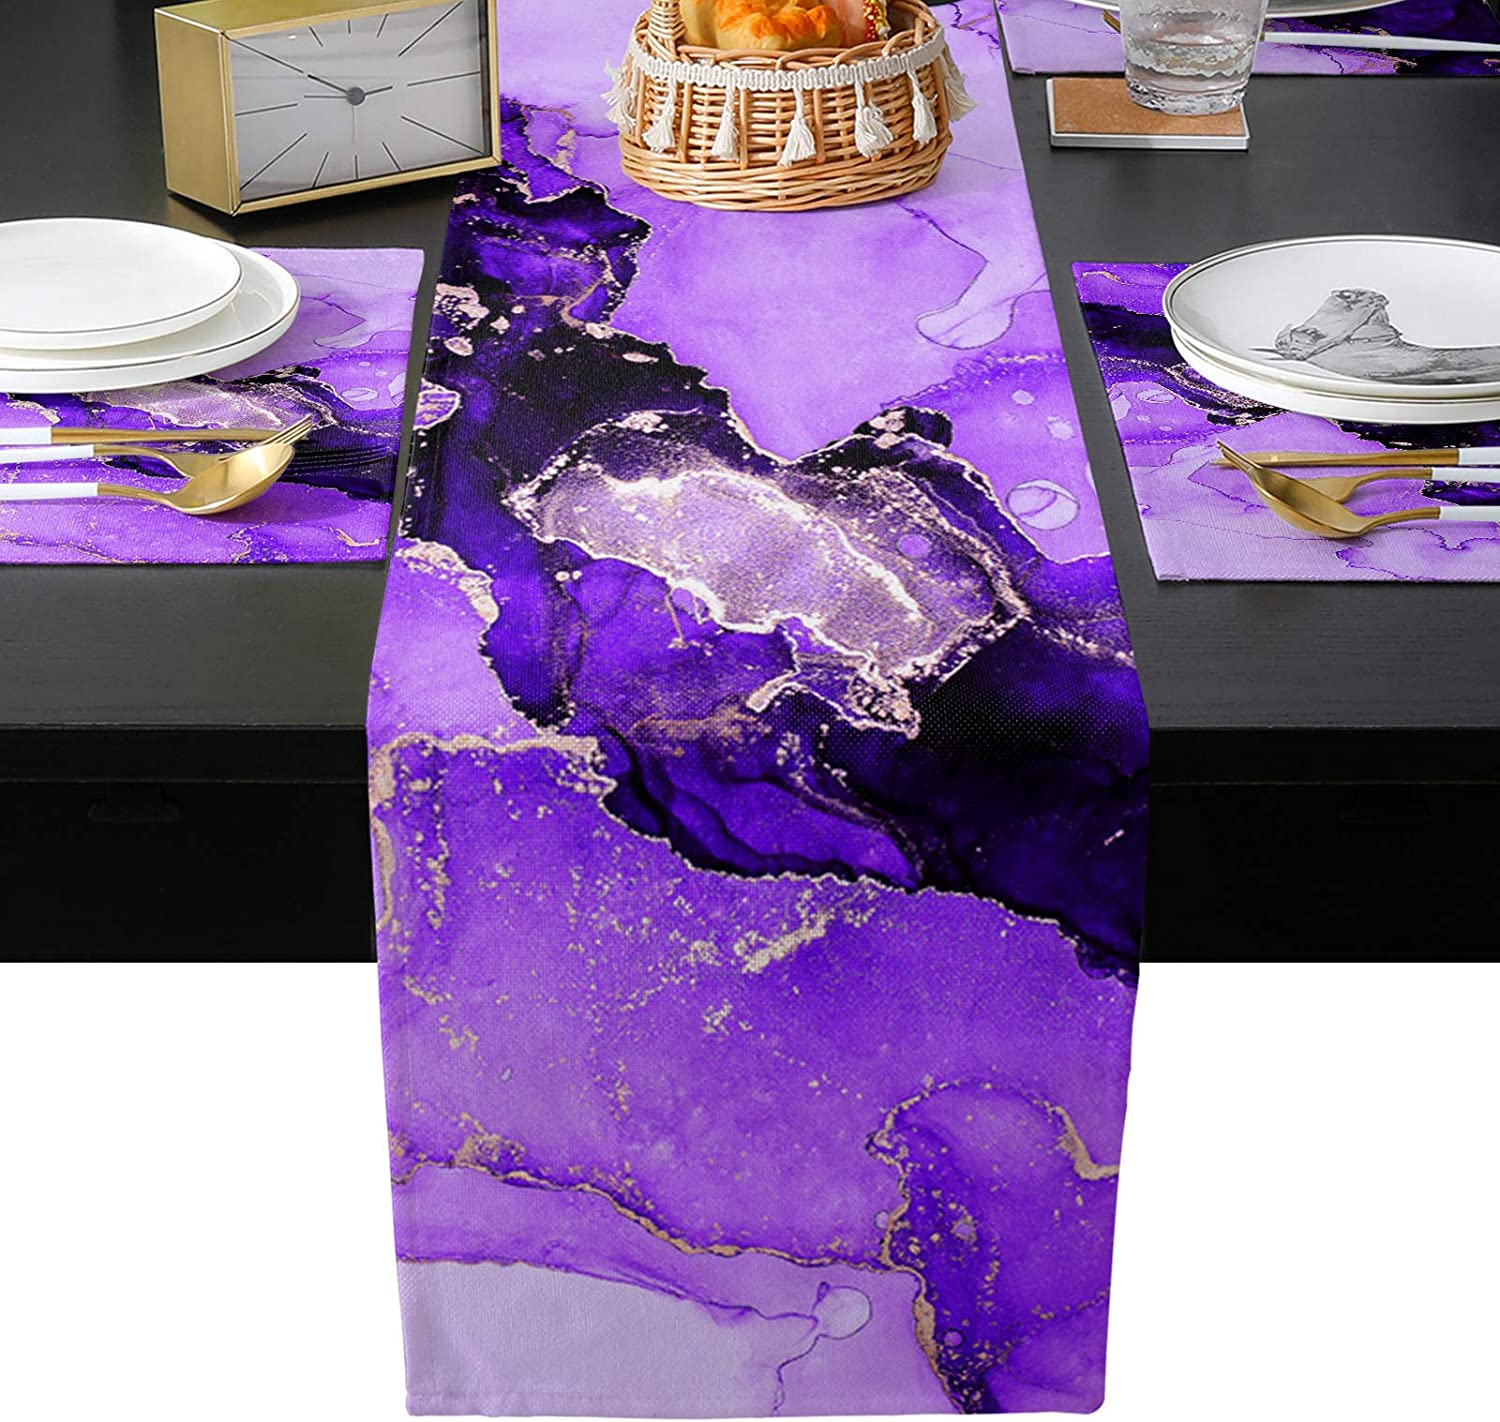 Edwiinsa 新作 人気 Table Runner with ふるさと割 Placemats Set 6 Ink Purp of Painting